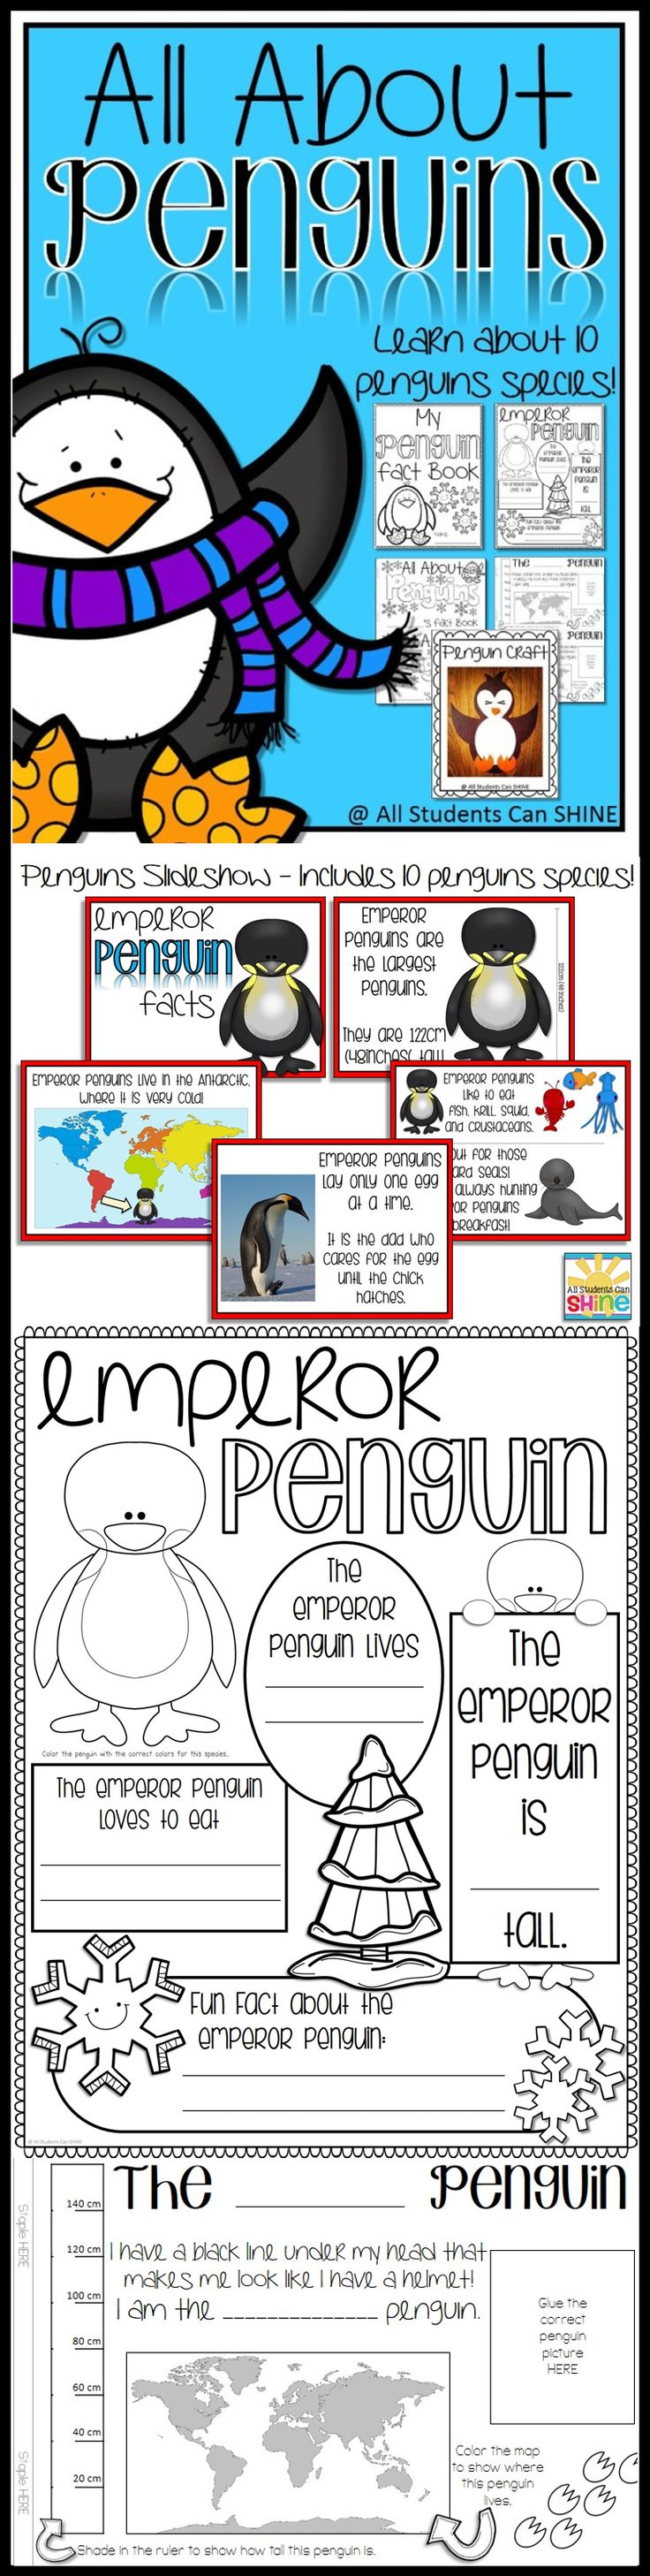 Plenty of penguin activities! I can't wait to start my penguins unit :)